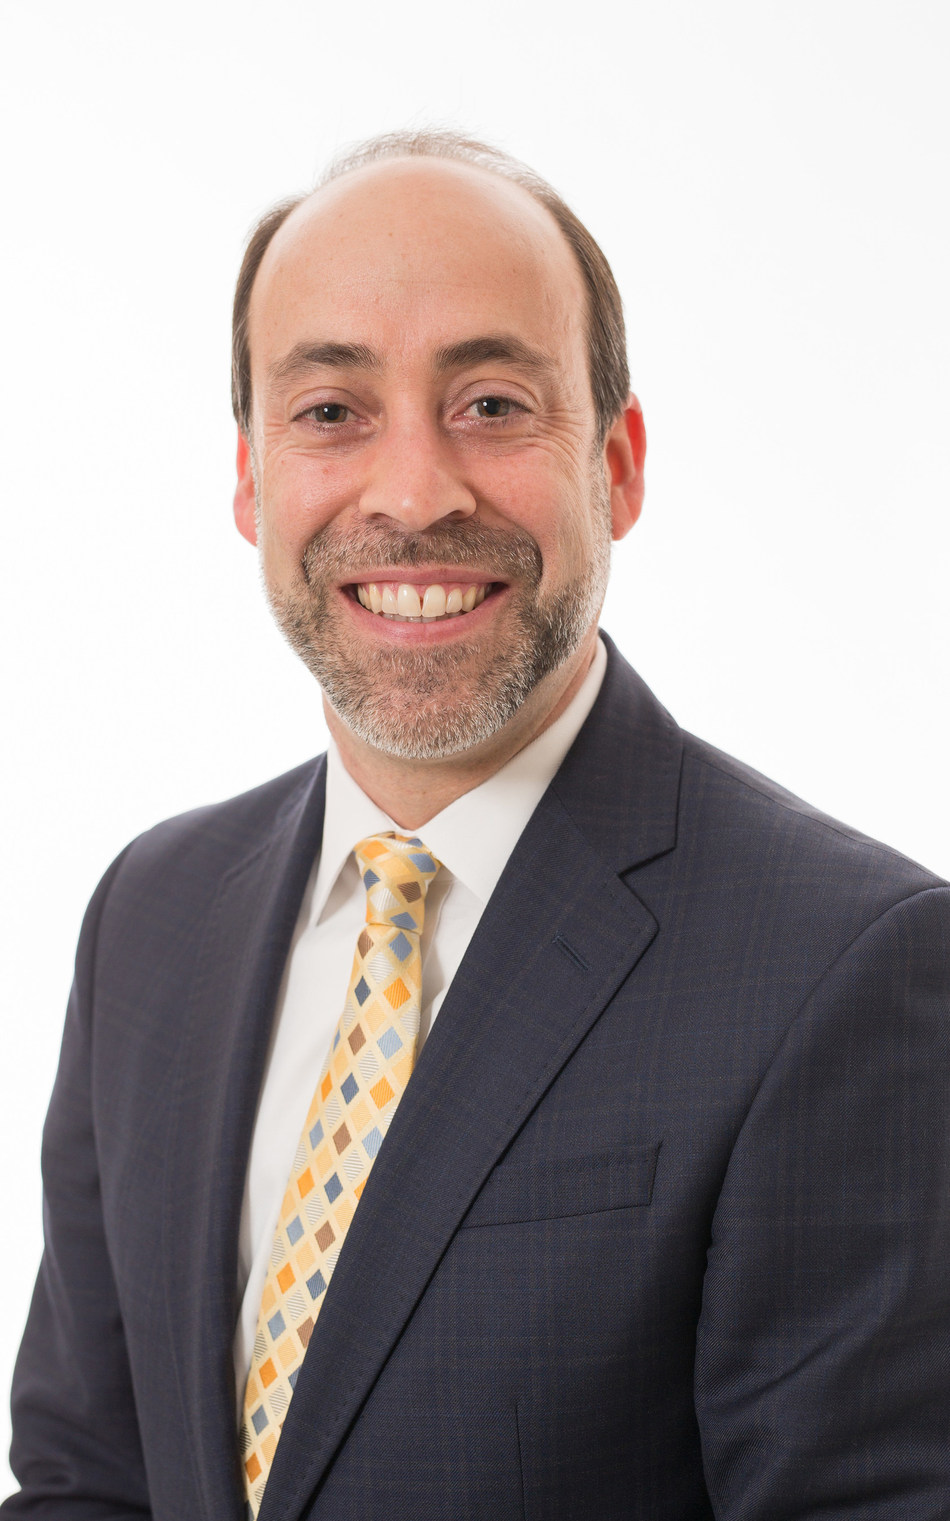 Chad T. Lefteris has been named COO of UCI Health, overseeing daily business operations of Orange County's only academic medical center.